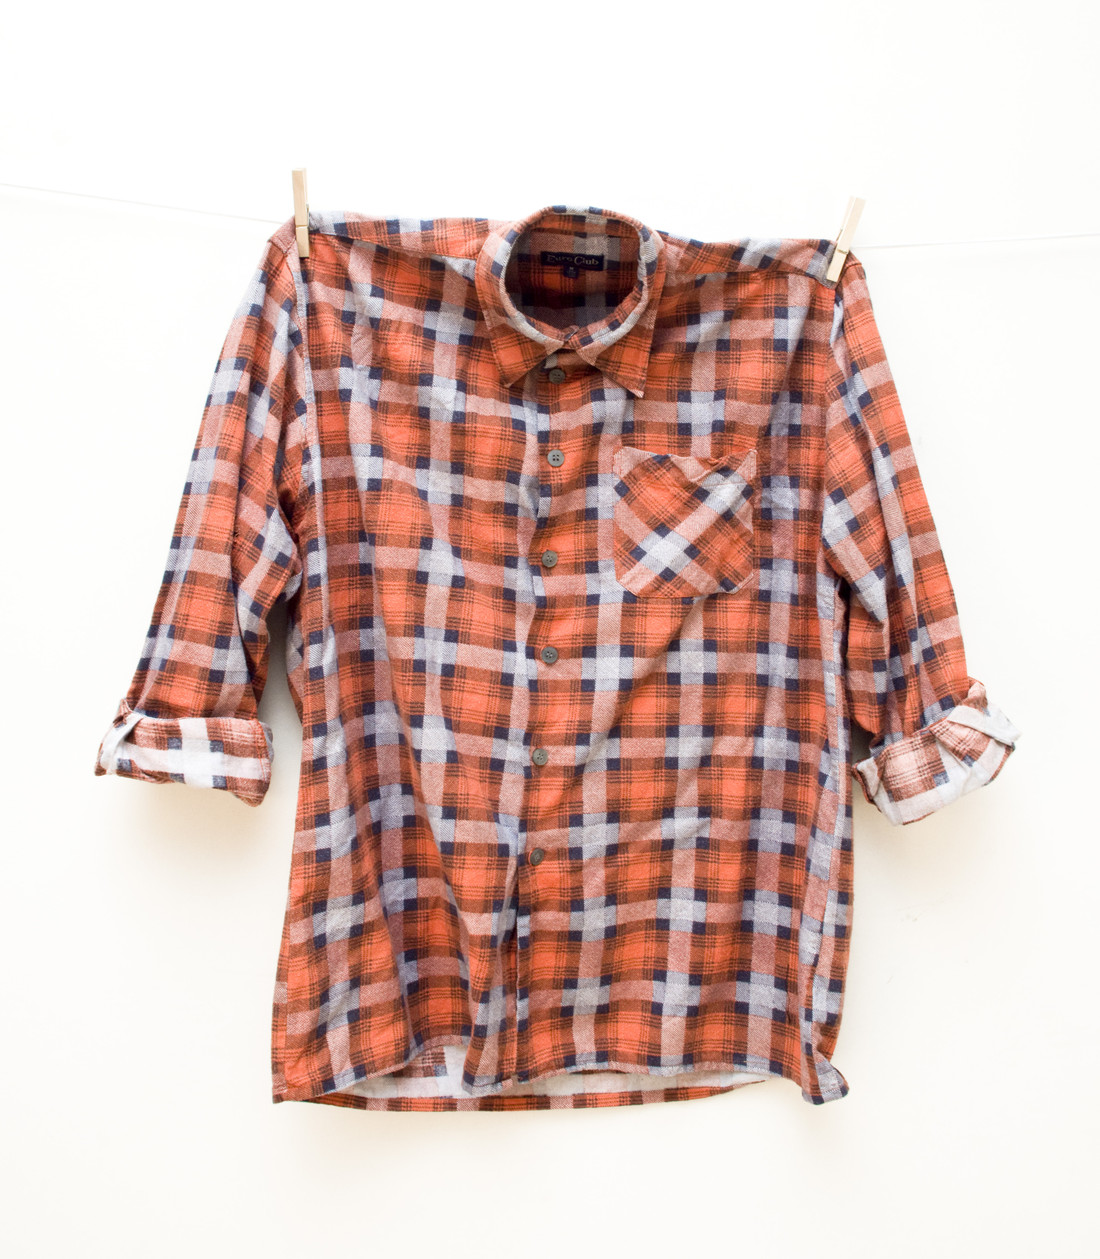 Orange shirt - Pop Sick Vintage